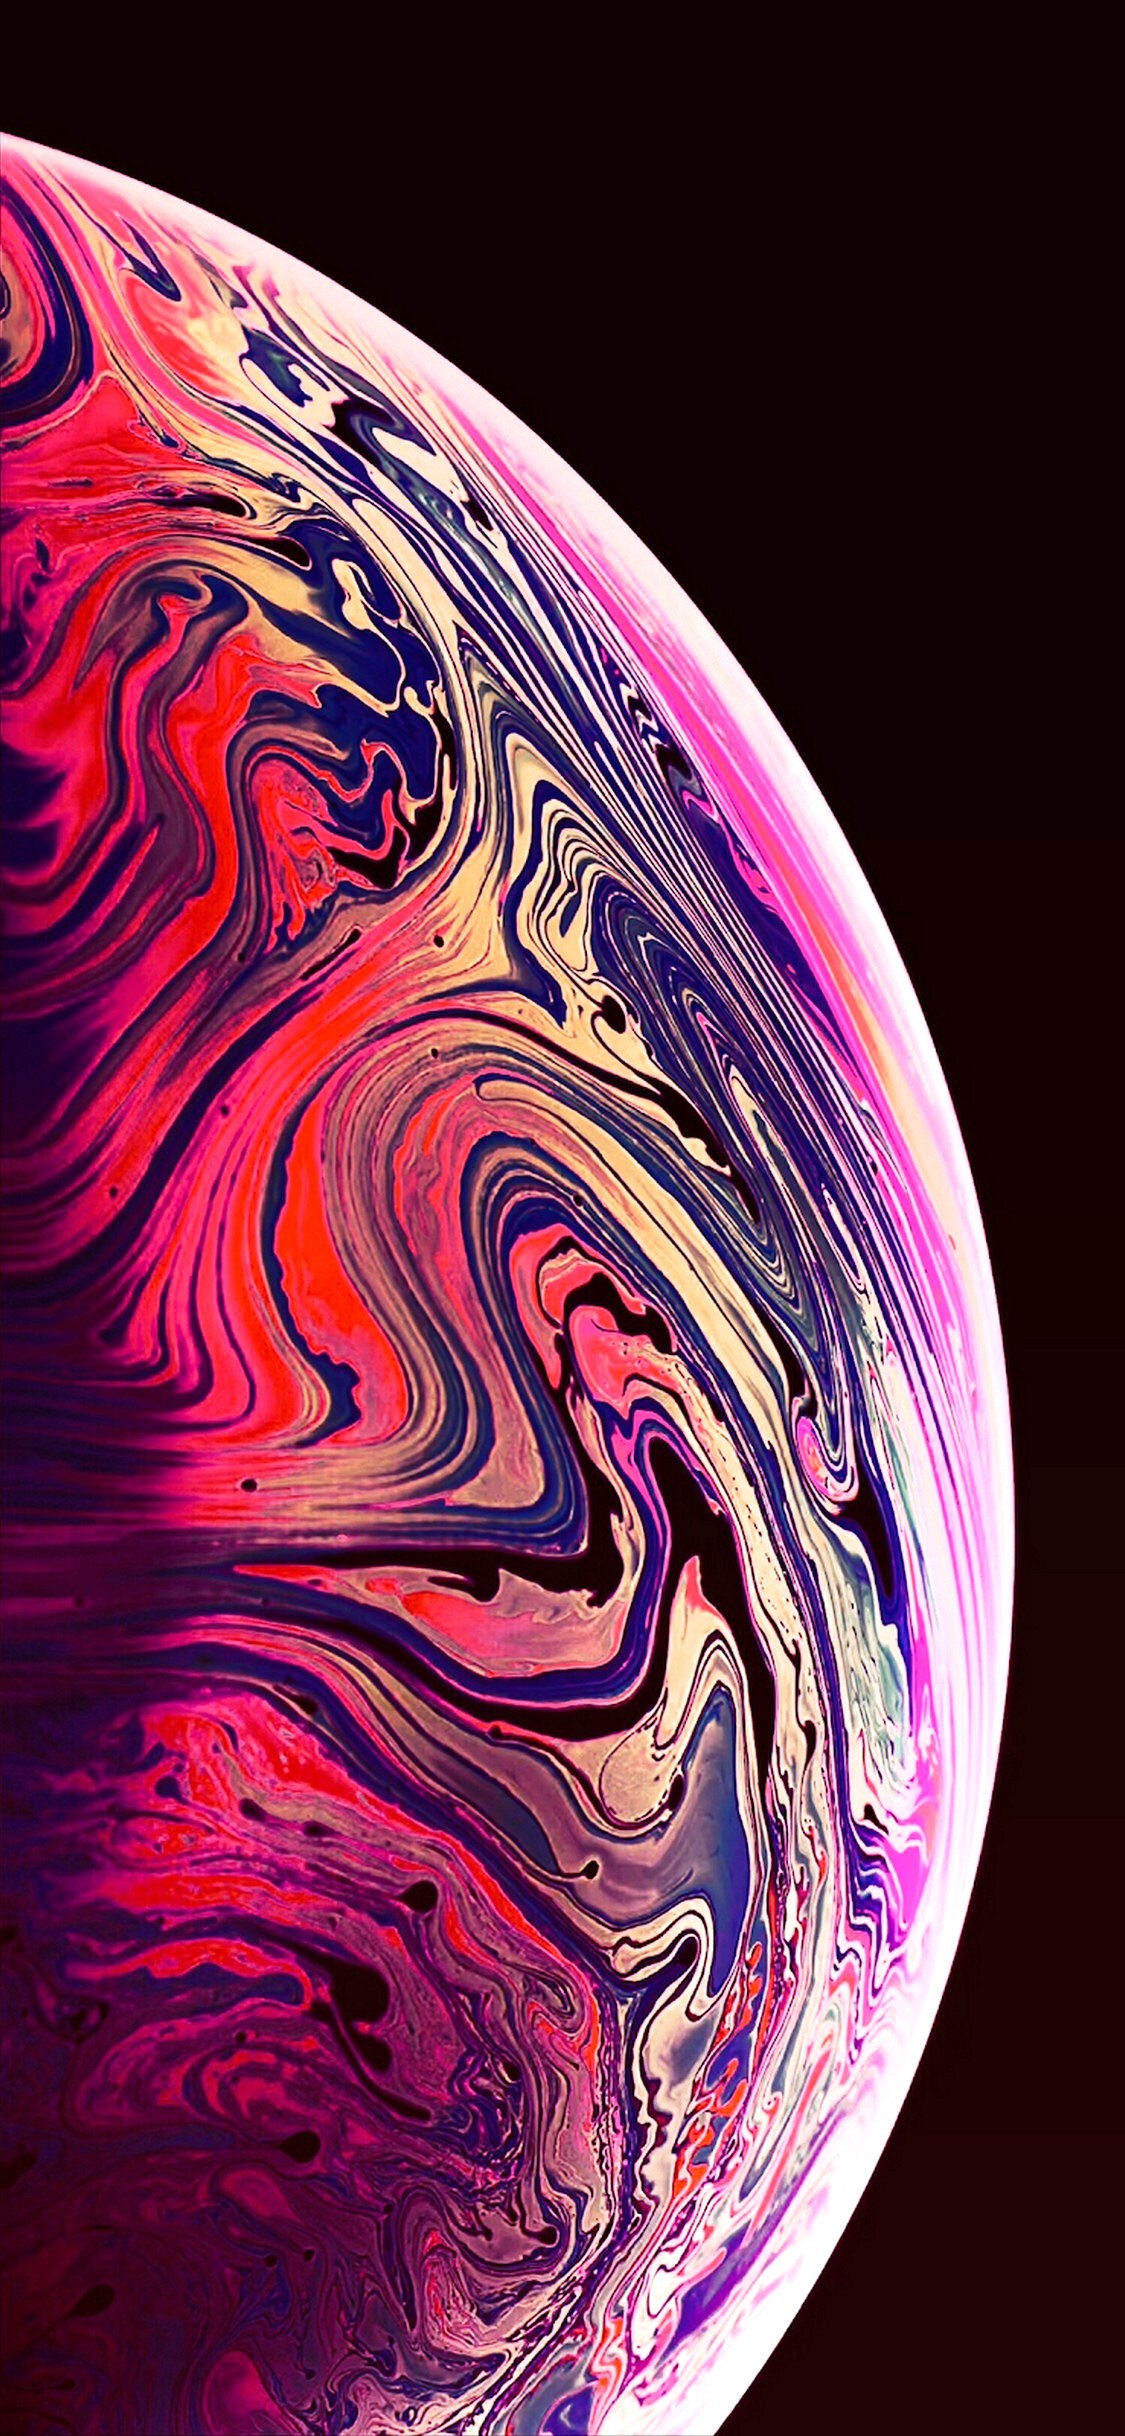 iPhone XS Wallpaper Home Screen With high-resolution 1125X2436 pixel. You can use this wallpaper for your iPhone 5, 6, 7, 8, X, XS, XR backgrounds, Mobile Screensaver, or iPad Lock Screen